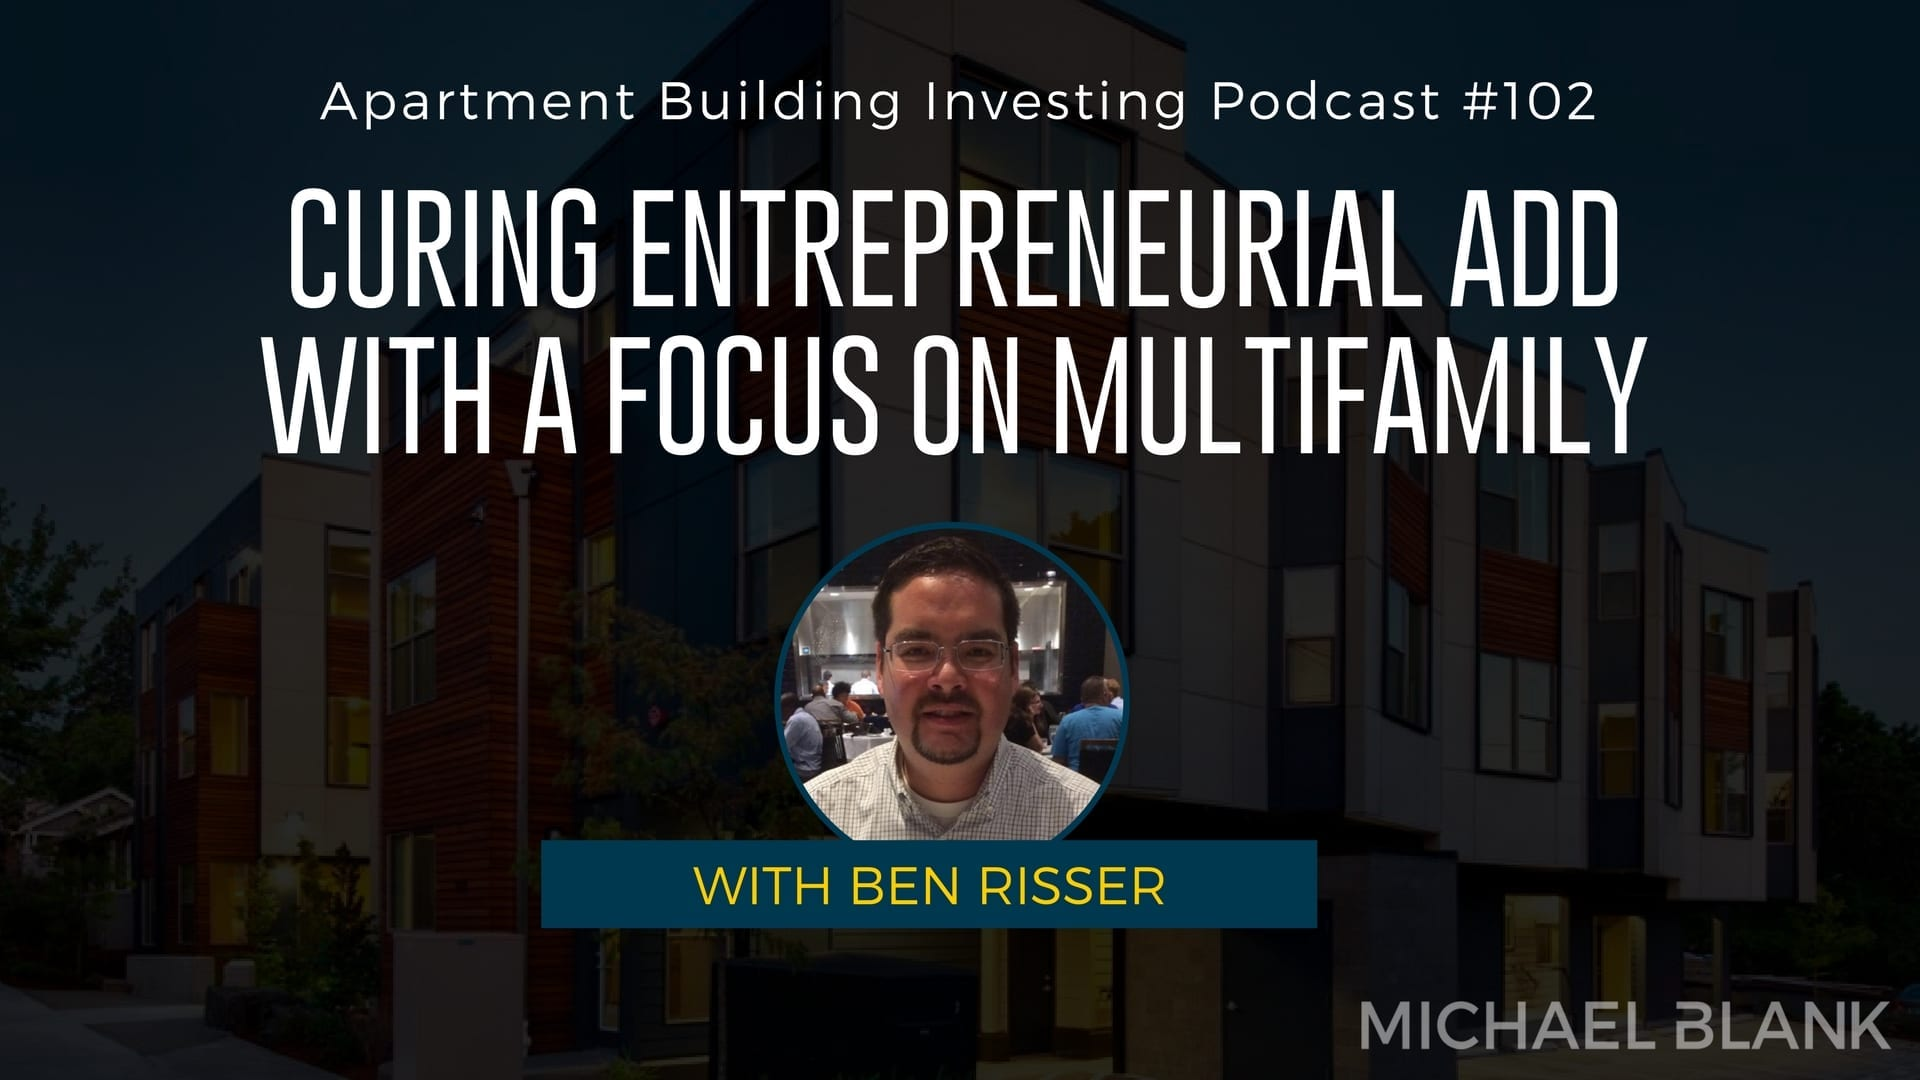 MB 102: Curing Entrepreneurial ADD with a Focus on Multifamily – With Ben Risser